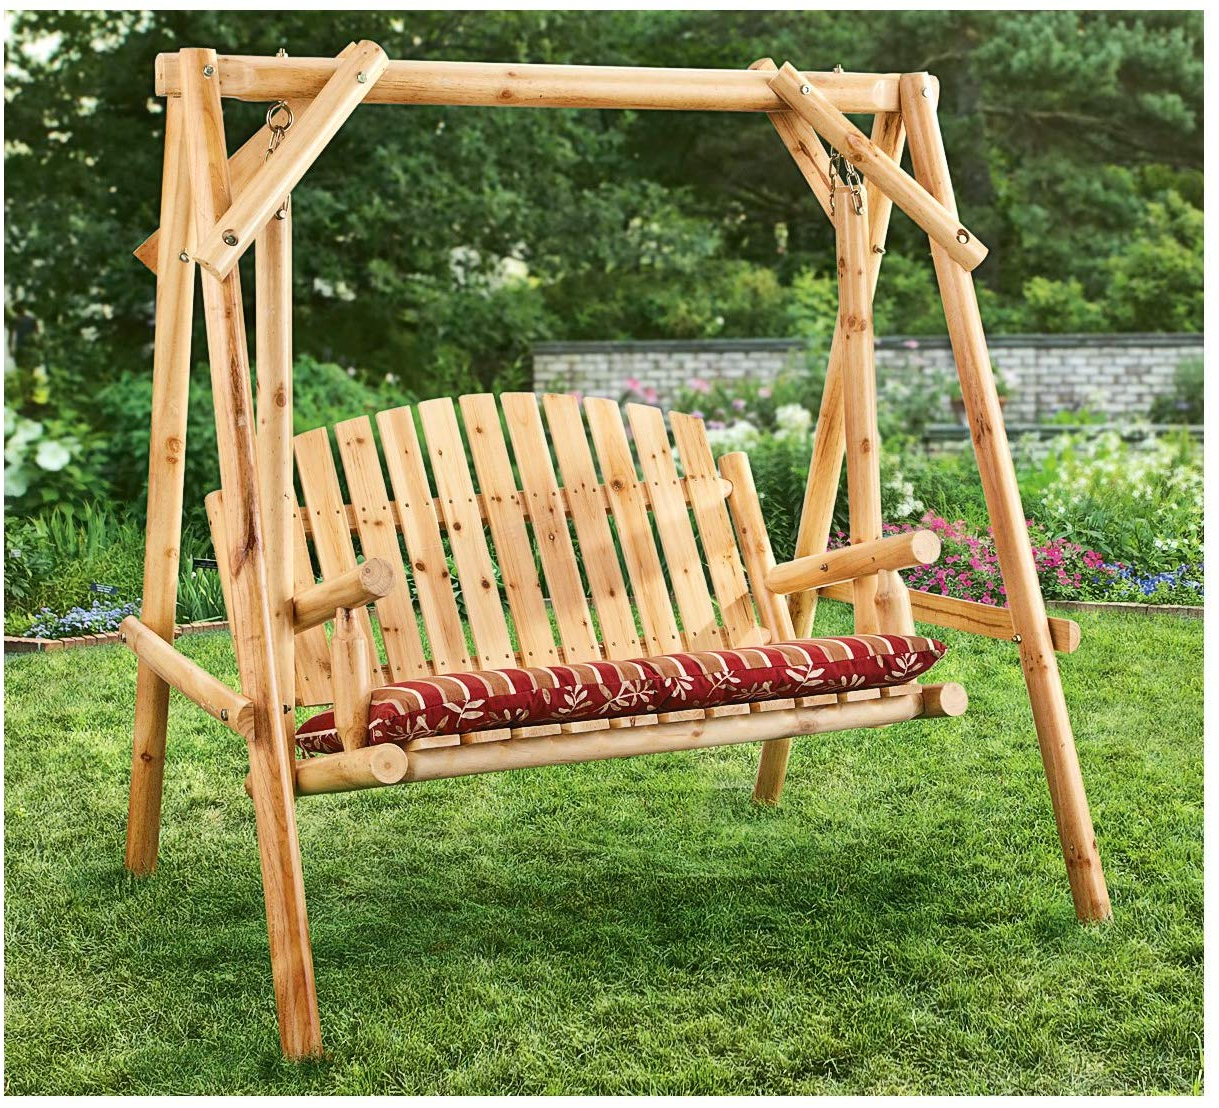 Castlecreek 4' Log Swing, 2 Person With Most Recent 3 Person Light Teak Oil Wood Outdoor Swings (View 8 of 30)